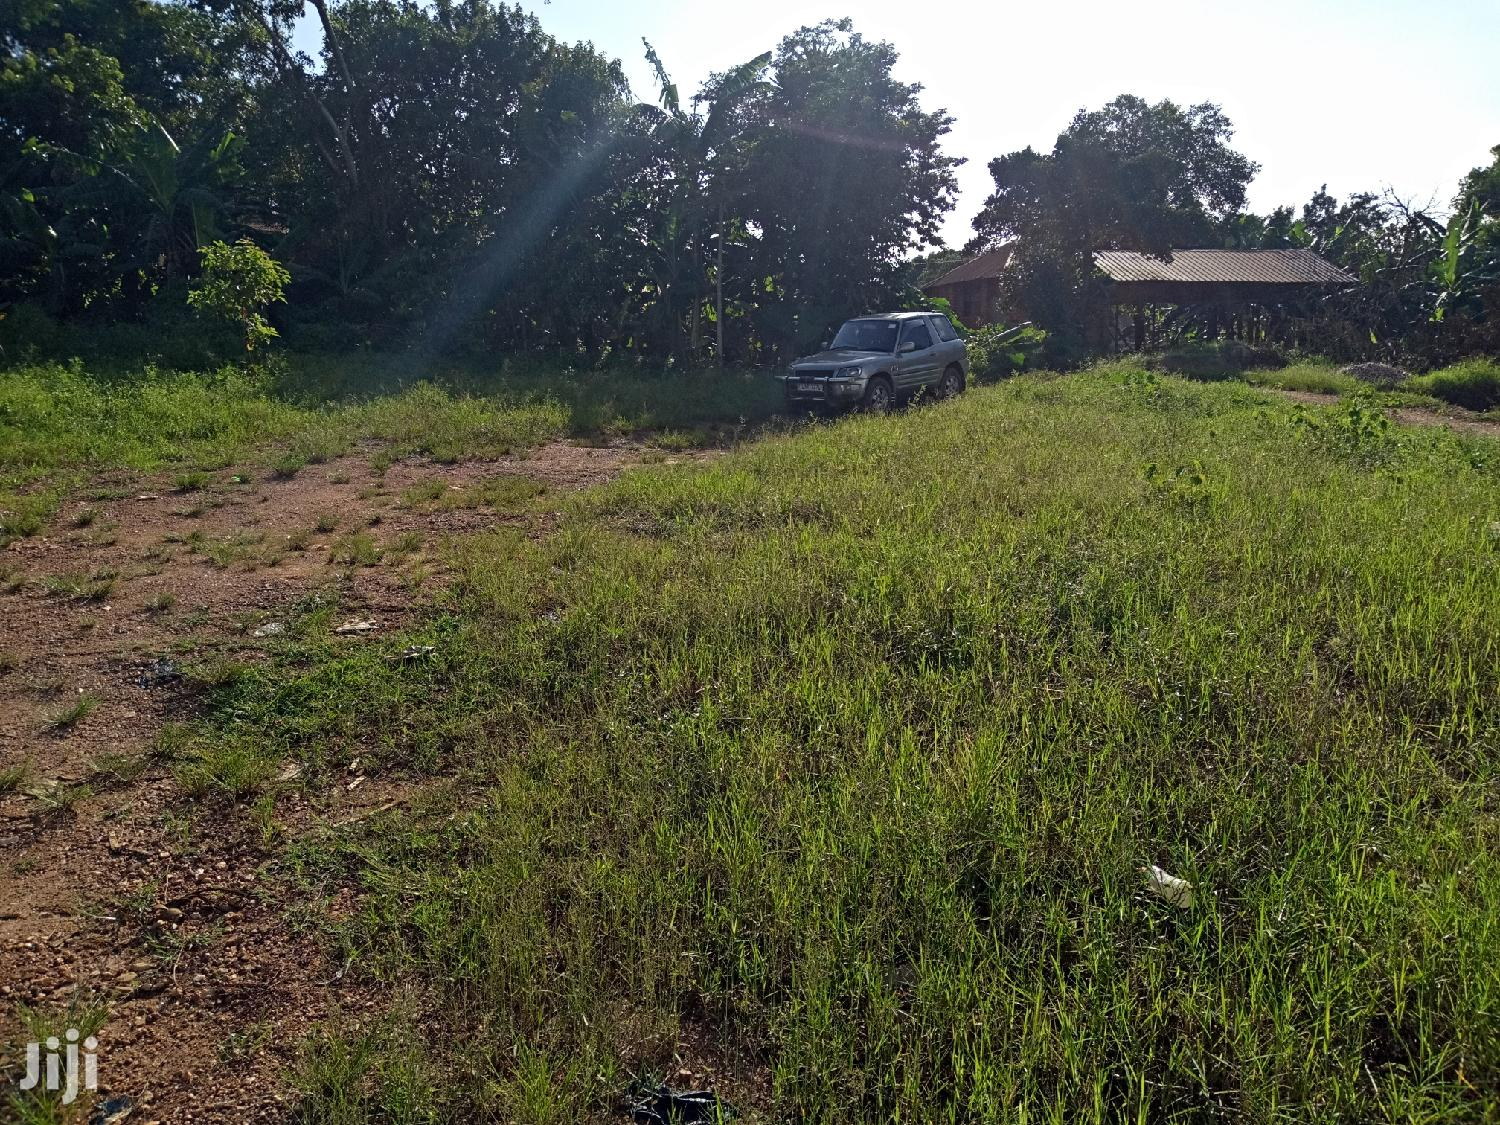 For Sell,Kira Plot Near the Main Road Being Tarmacked | Land & Plots For Sale for sale in Kampala, Central Region, Uganda